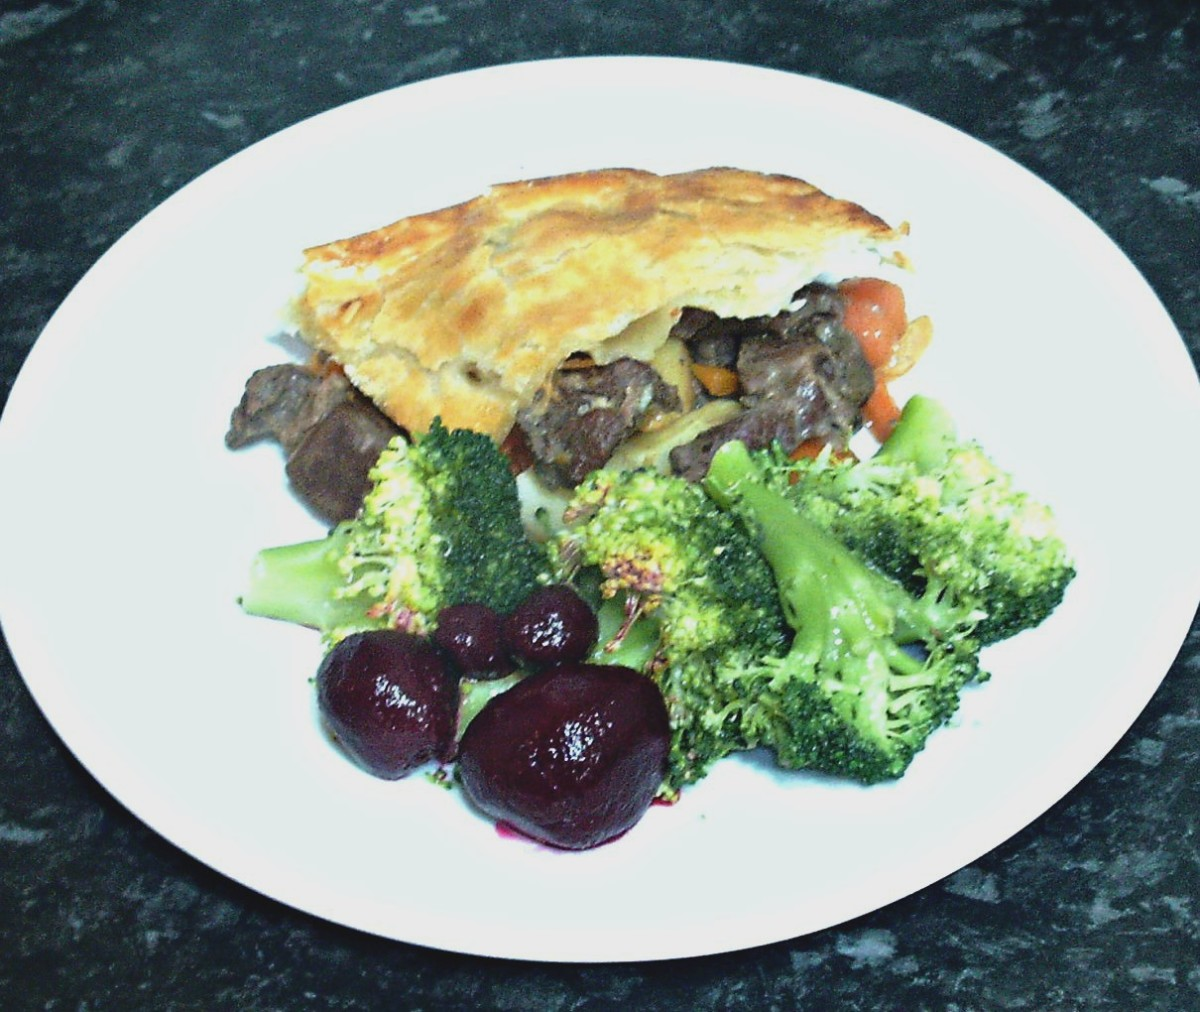 Drained broccoli and pickled beets are plated with alpaca pie